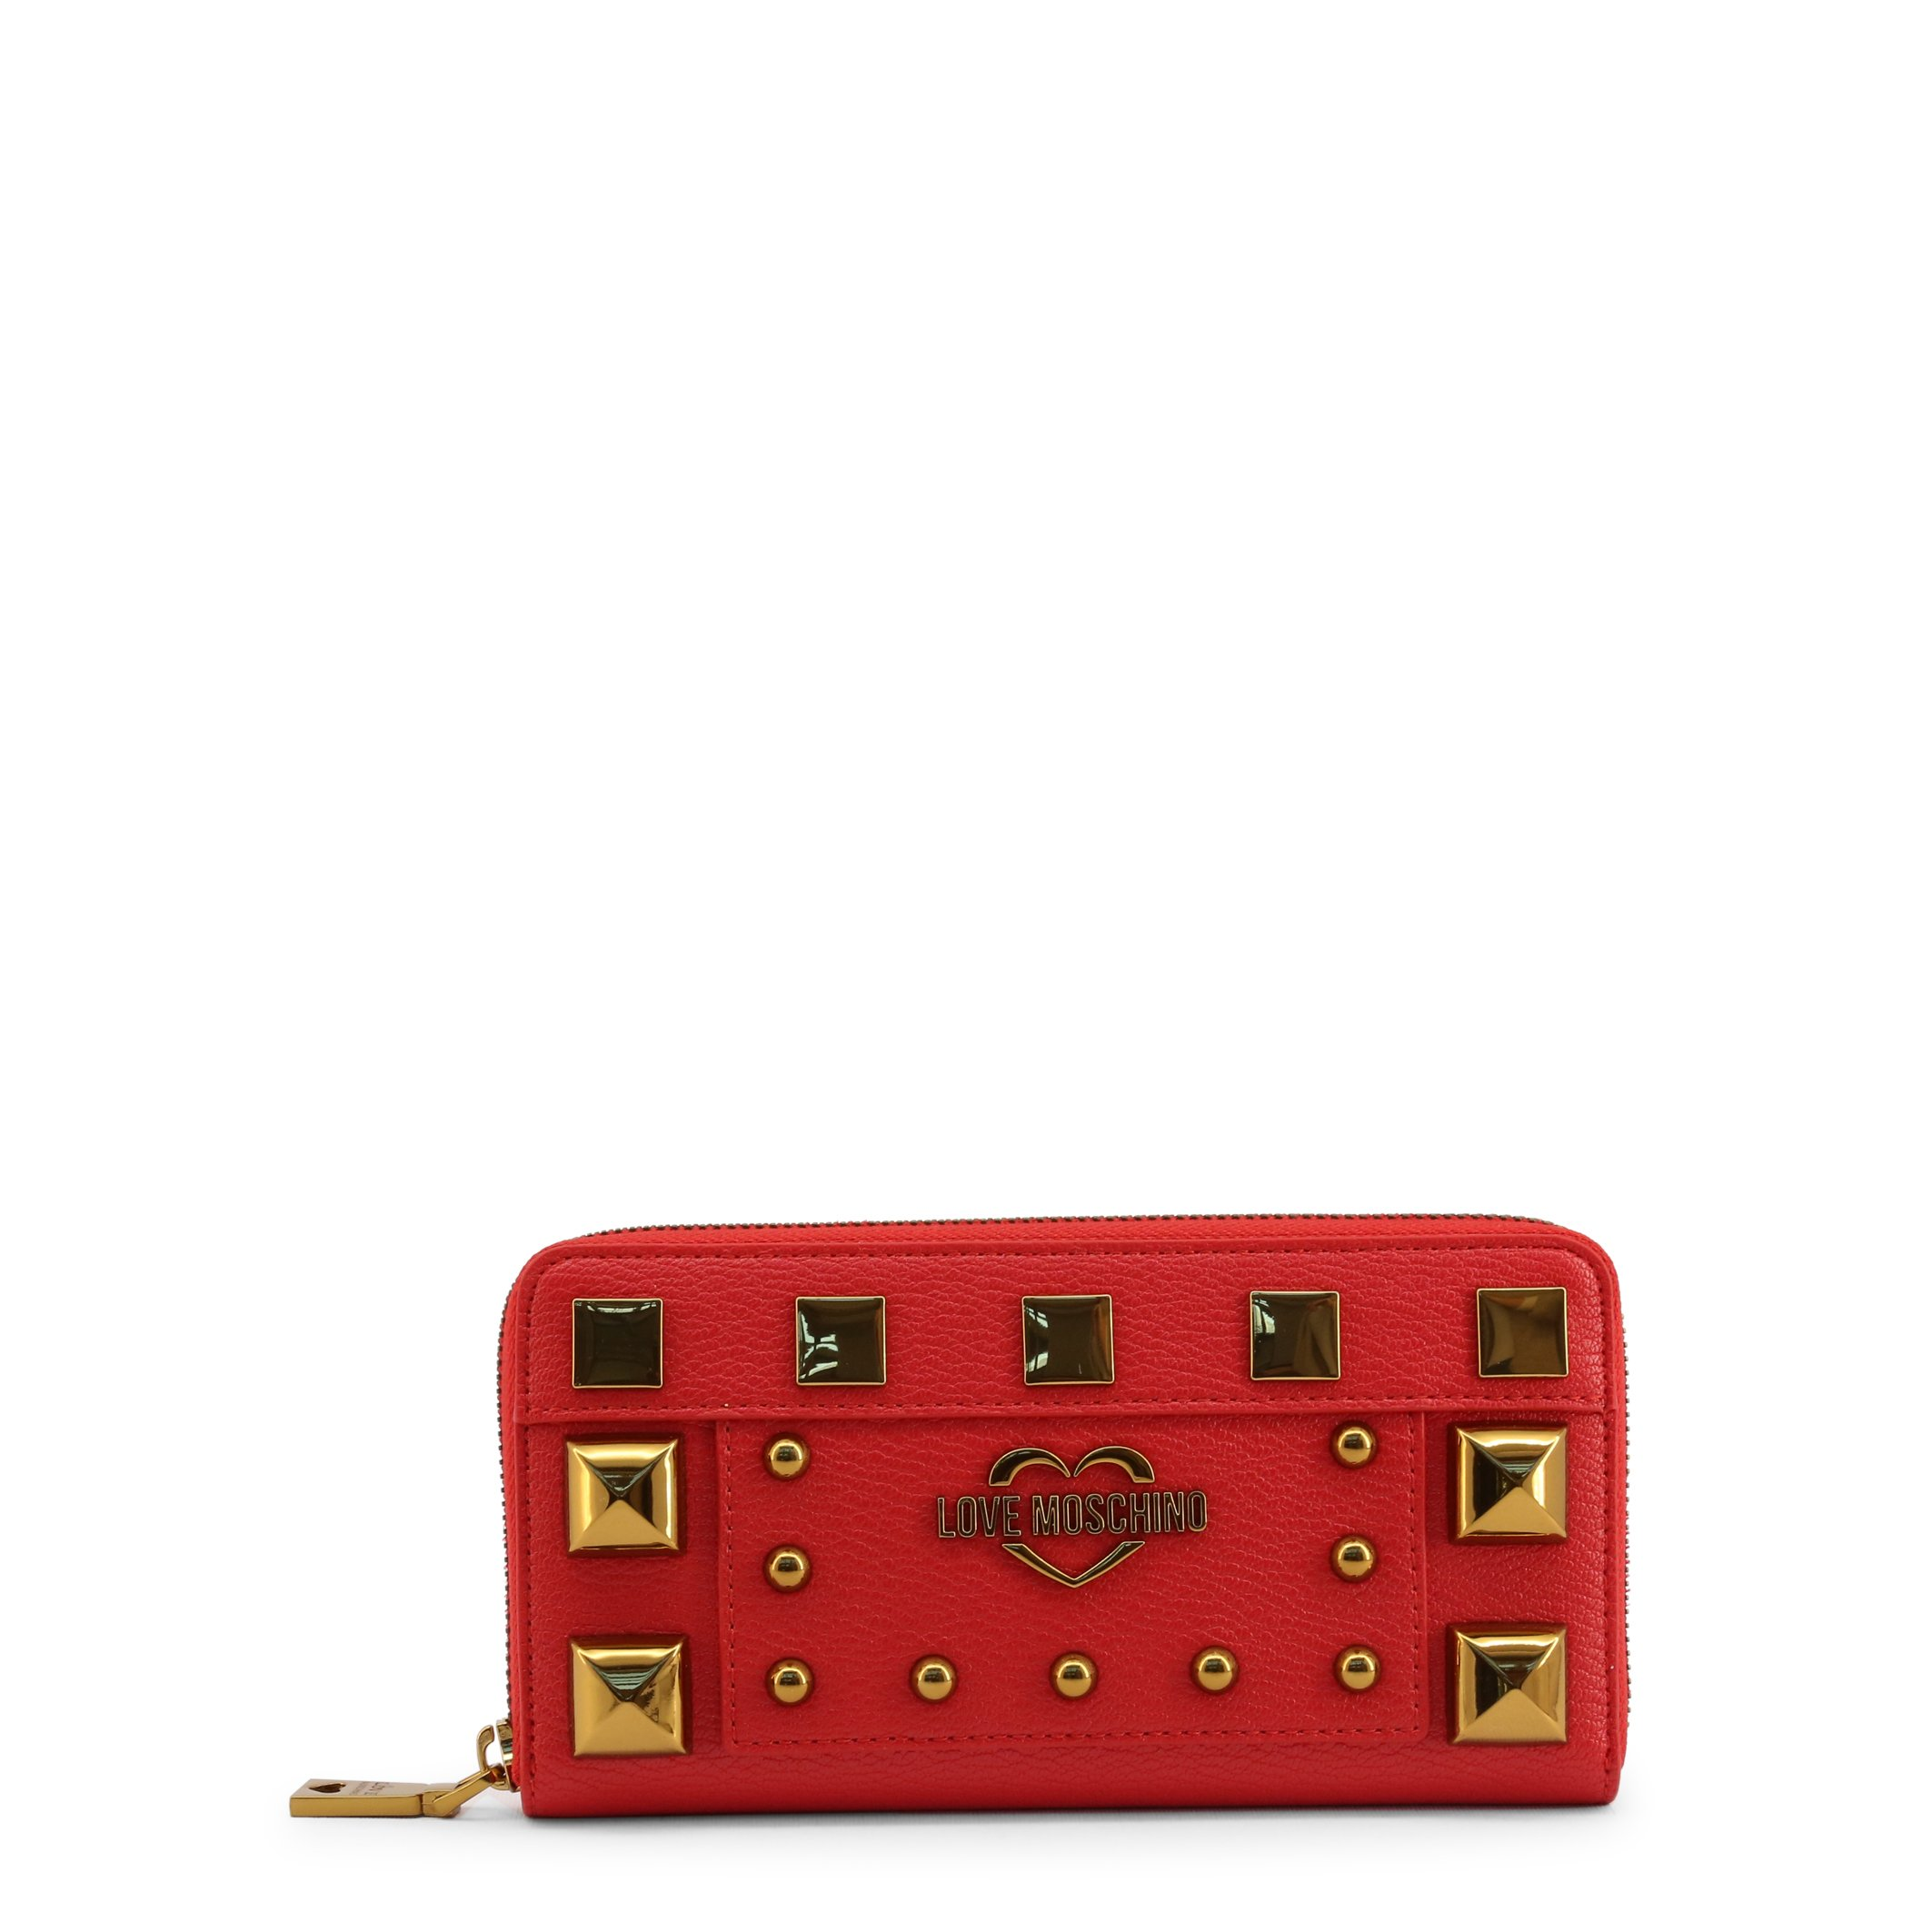 Love Moschino Women's Wallet Various Colours JC5650PP0BKO - red NOSIZE